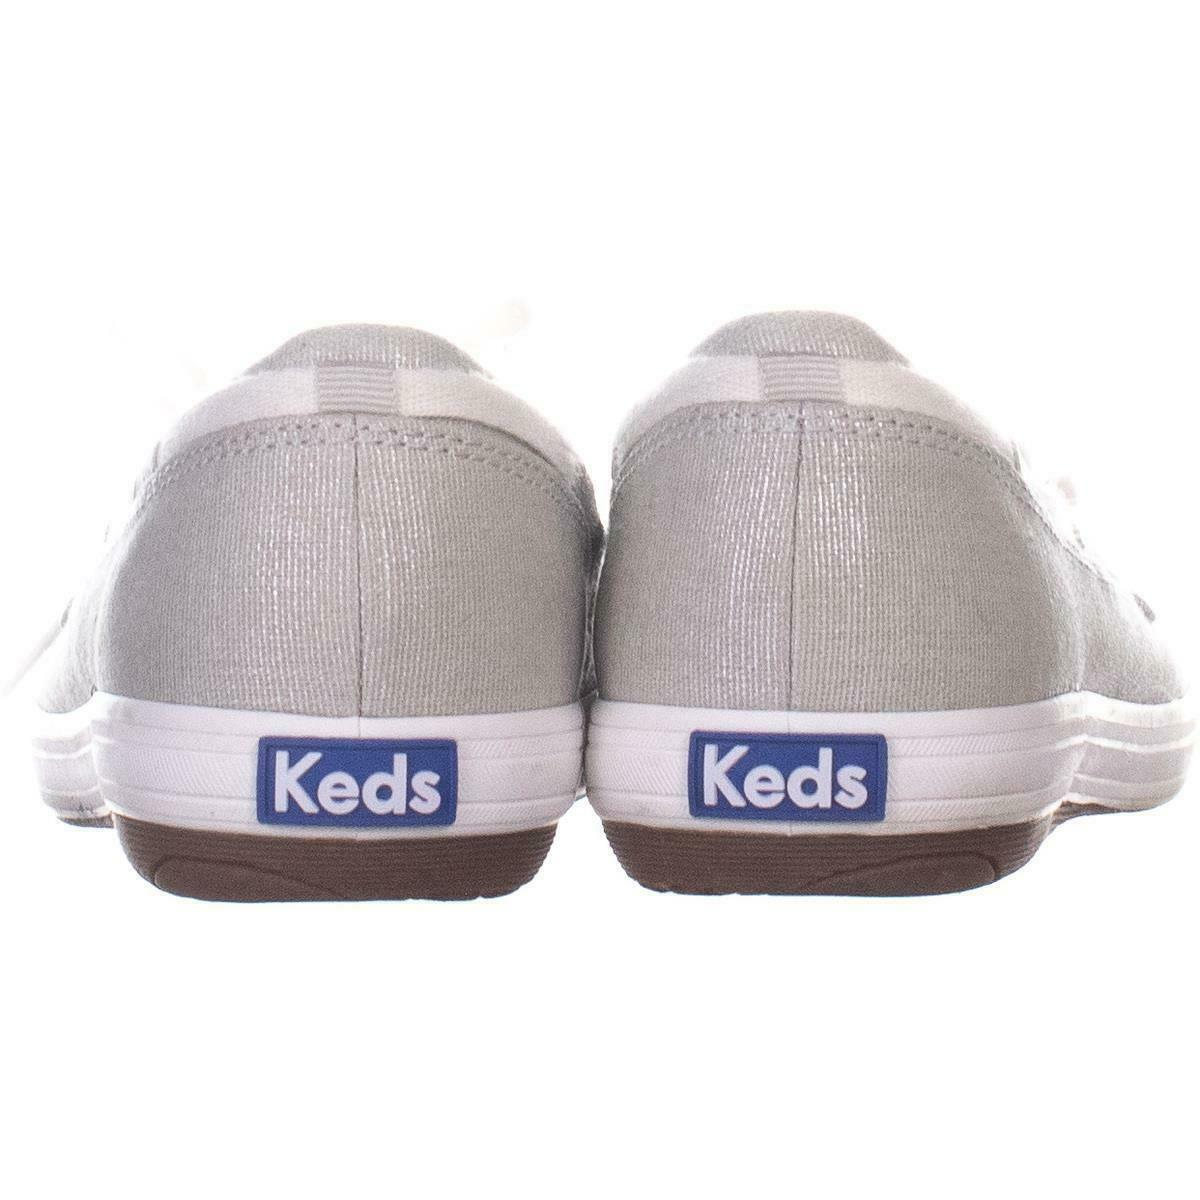 Keds Glimmer Lace Up Boat Shoes 553, Silver, 6.5 US / 37 EU image 3